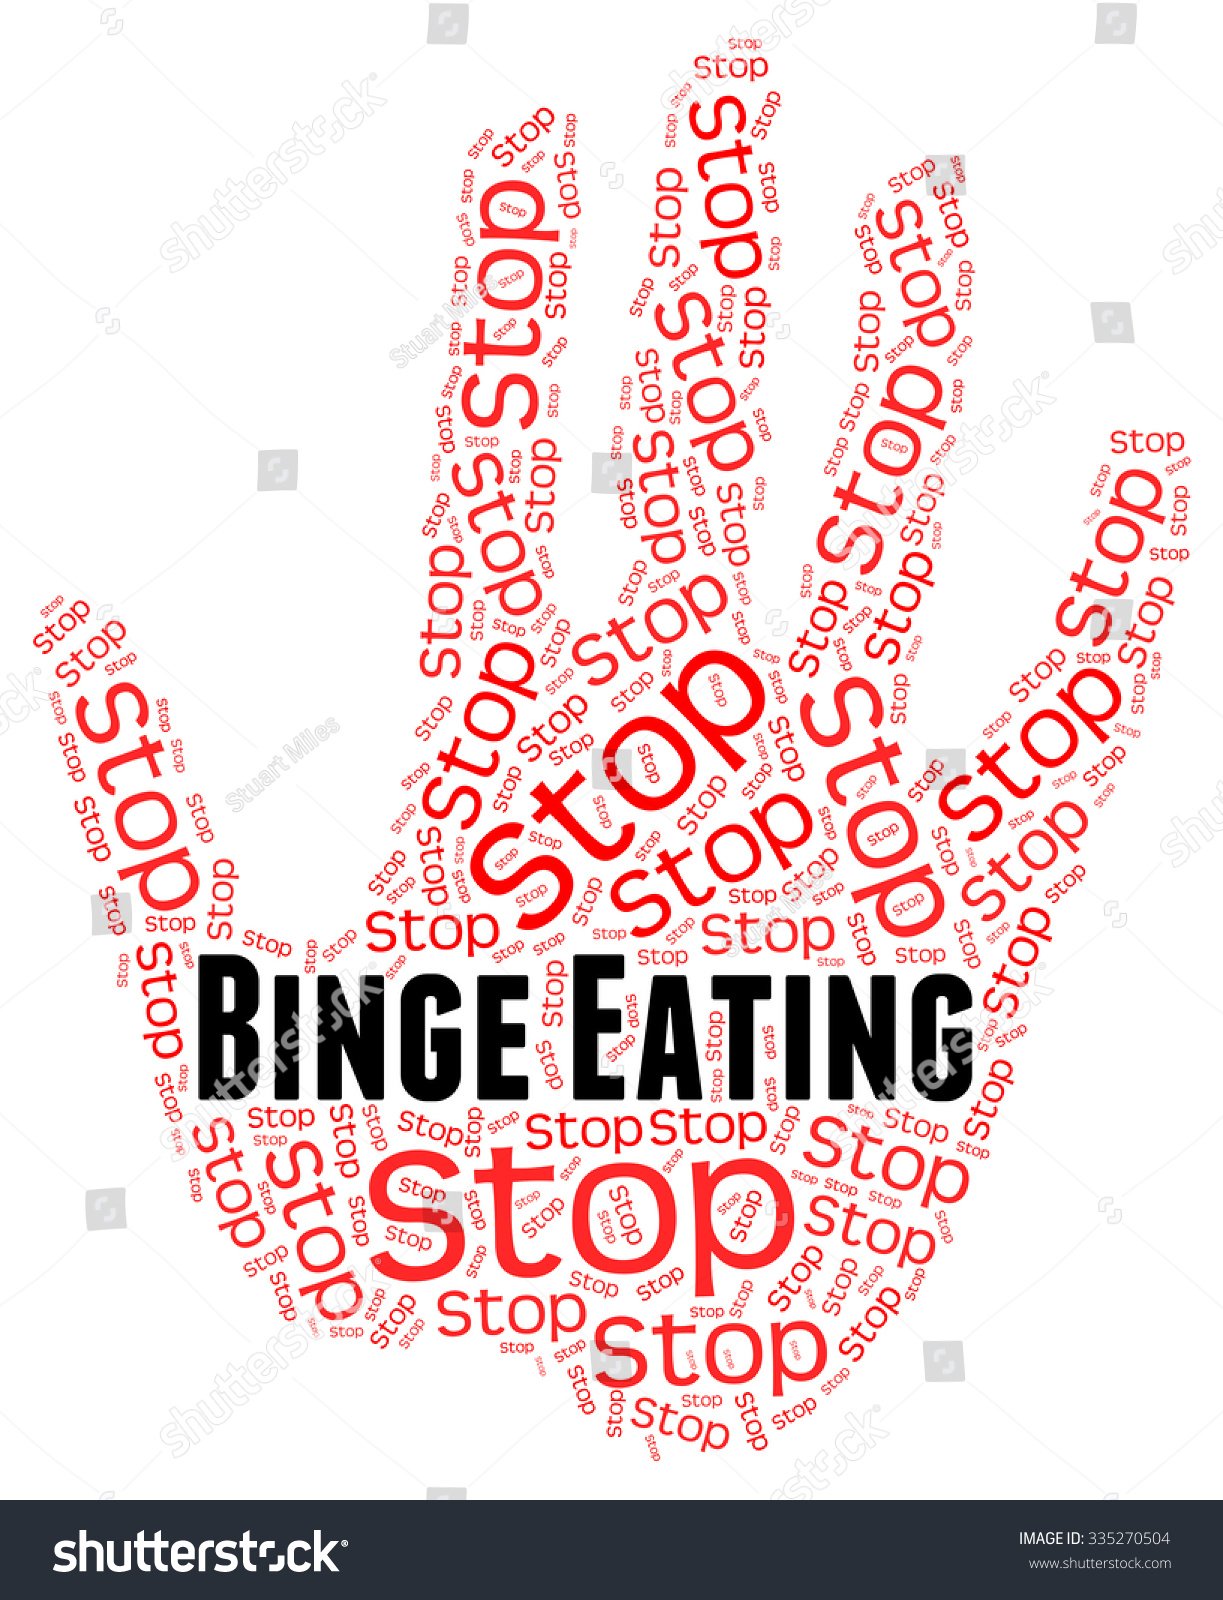 how to stop binge eating when high